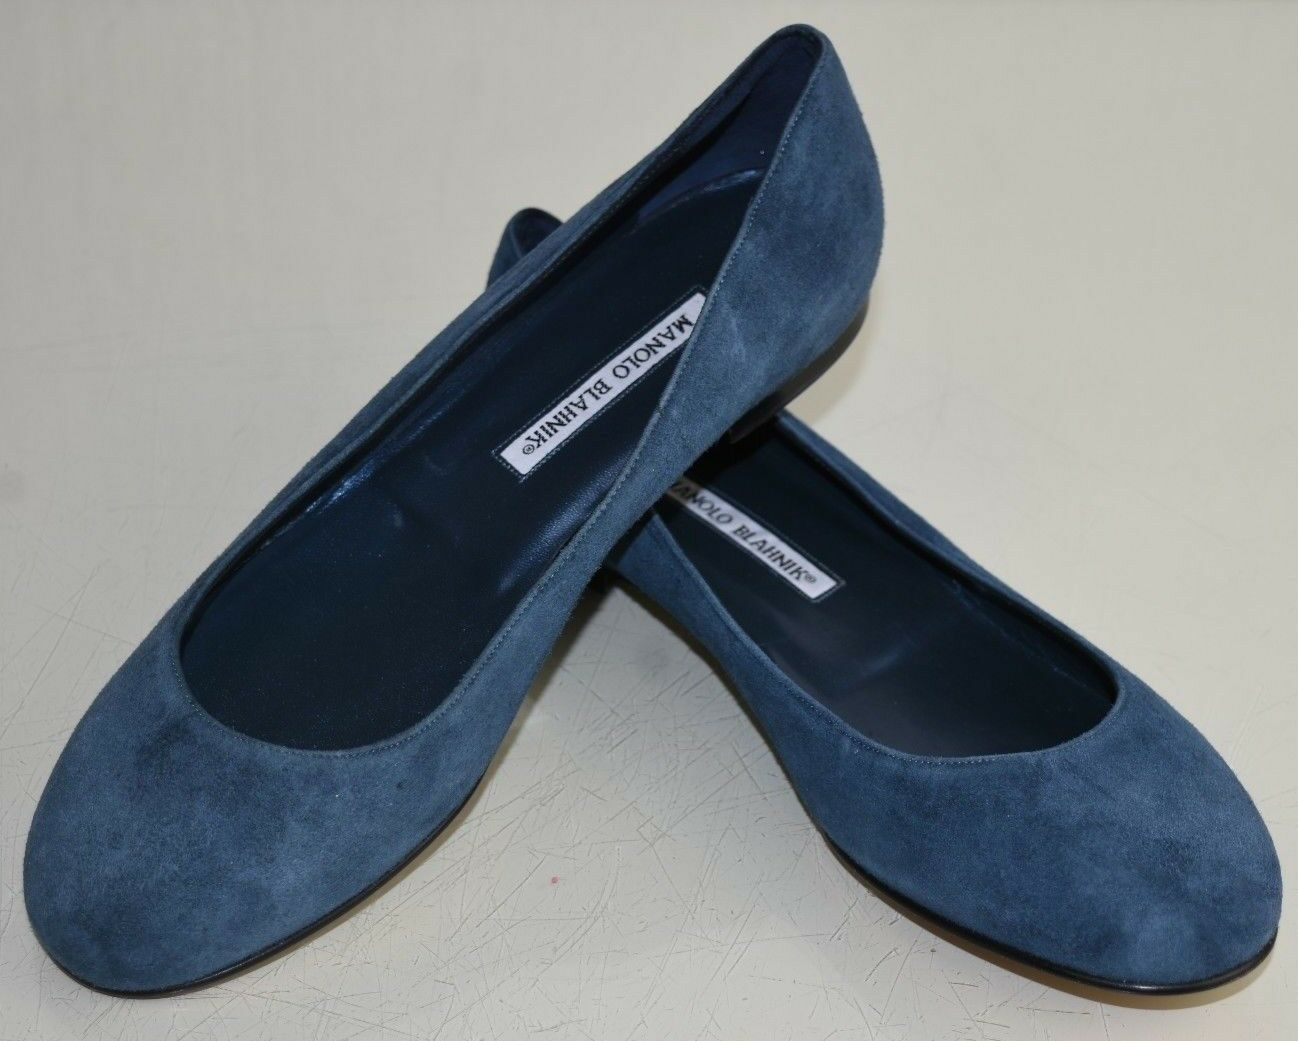 New Manolo Blahnik Flats Suede Suede Suede bleu Round Toe Navy Flat chaussures  40 2e1907